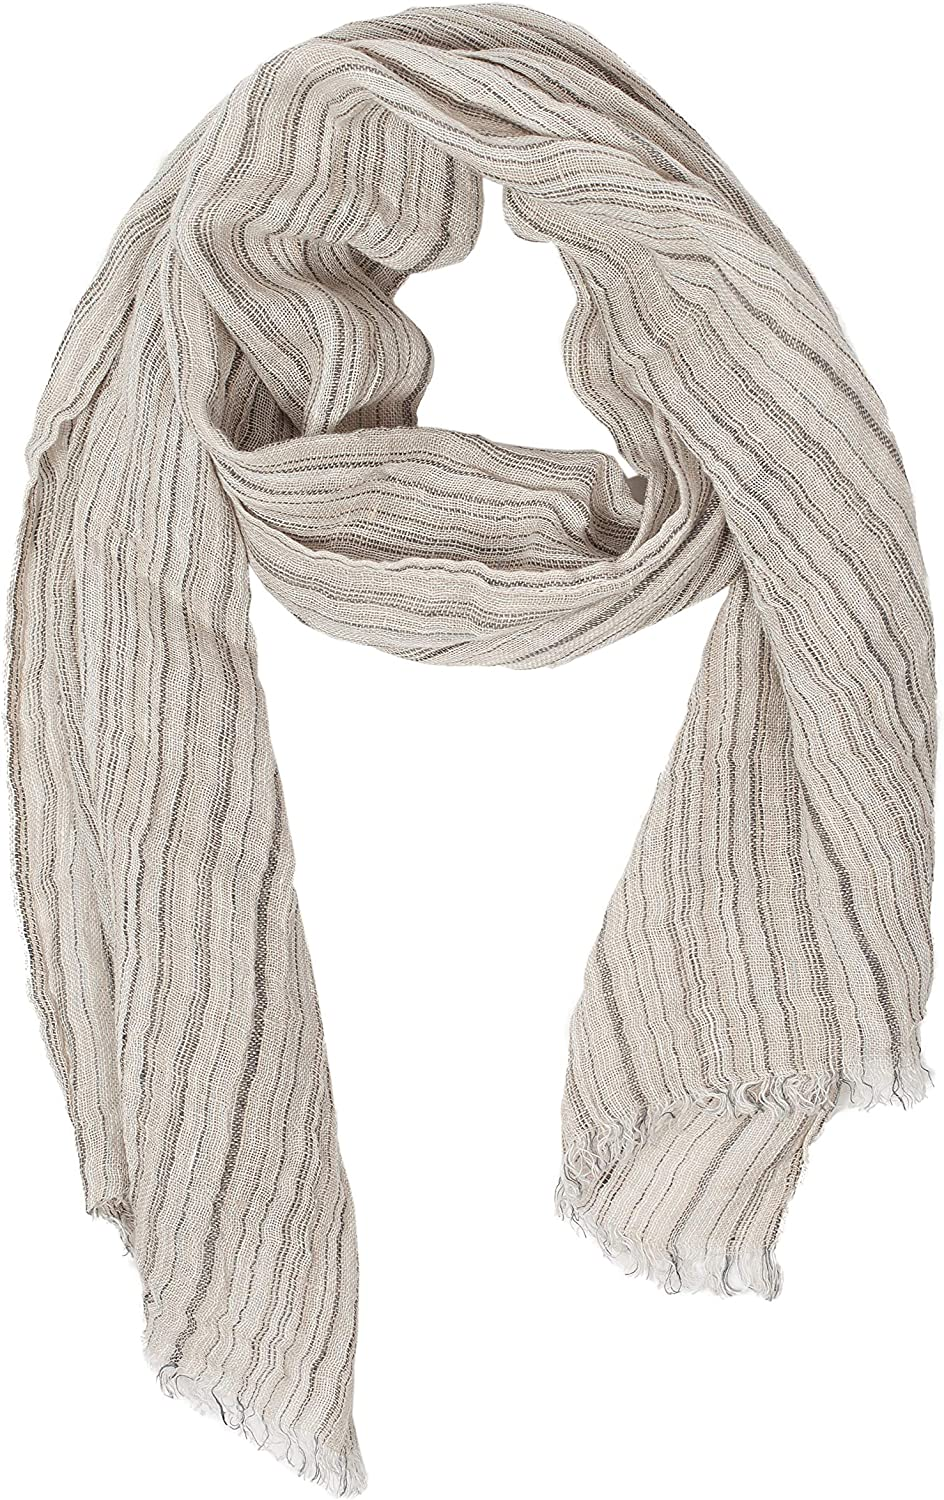 Striped Scarf   100% Linen Scarf   Grey Scarf   Scarves For Women   Mens Scarf